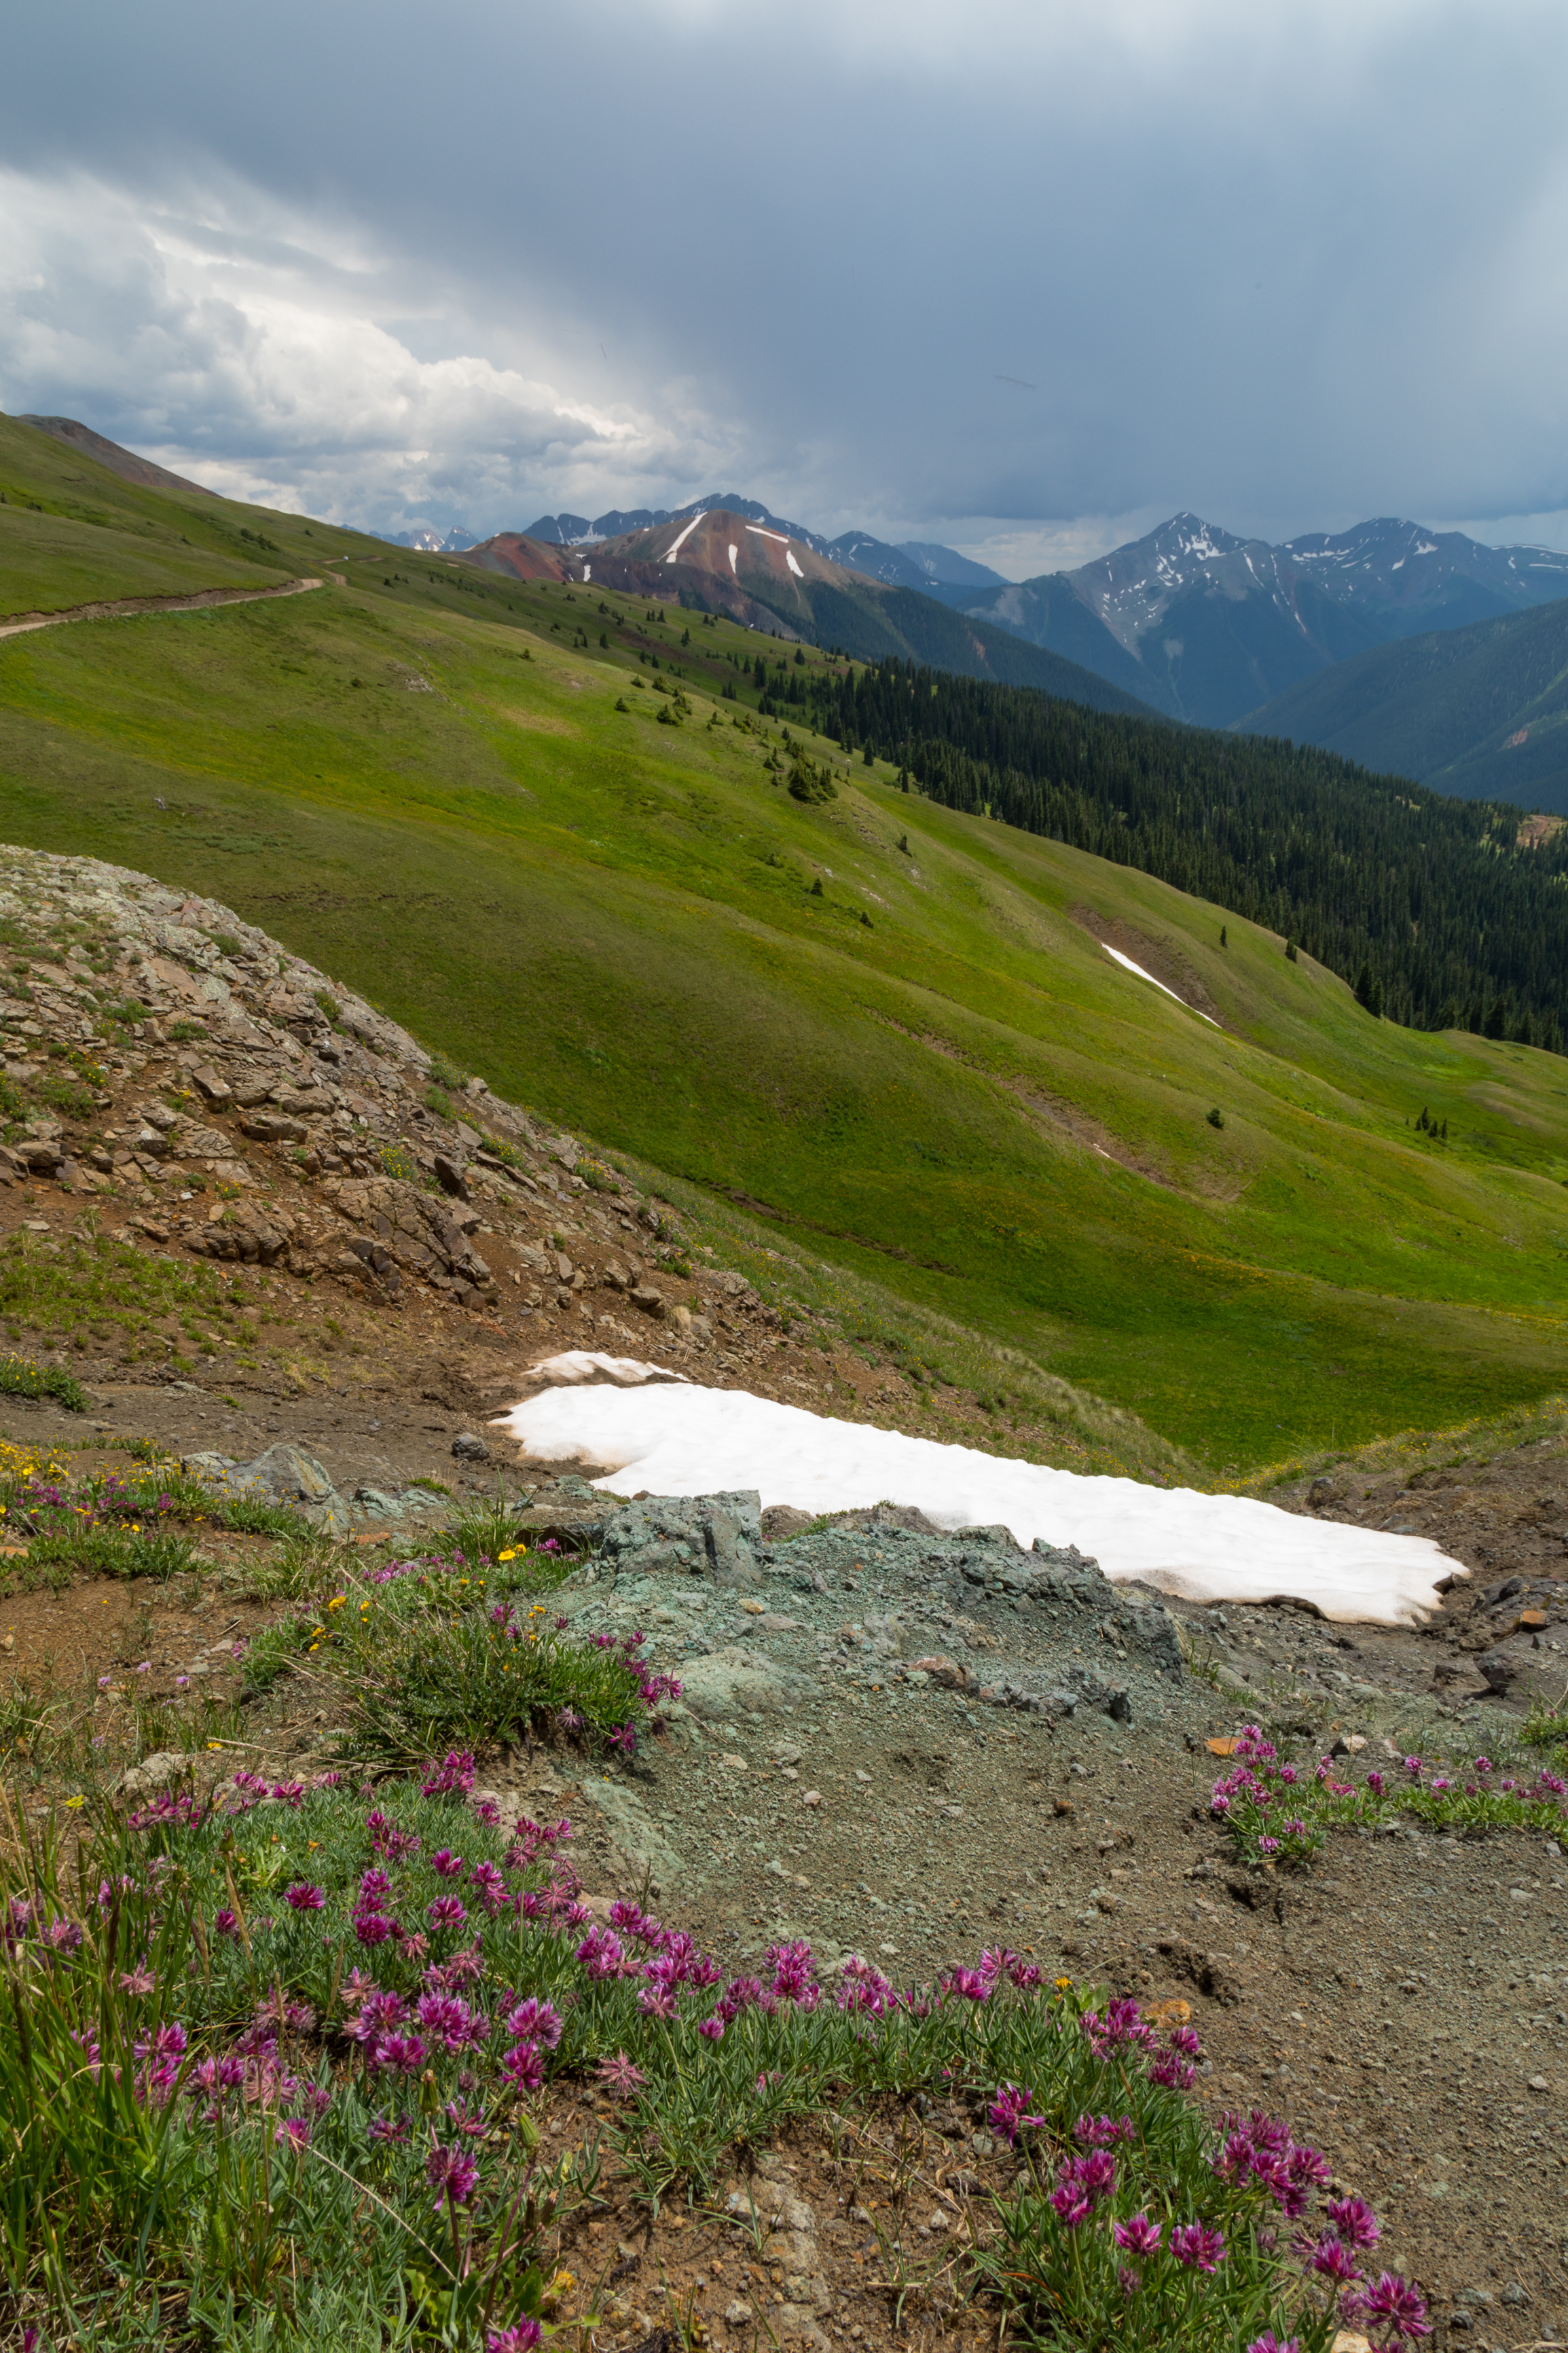 Brown Gulch Road, Image # 0654